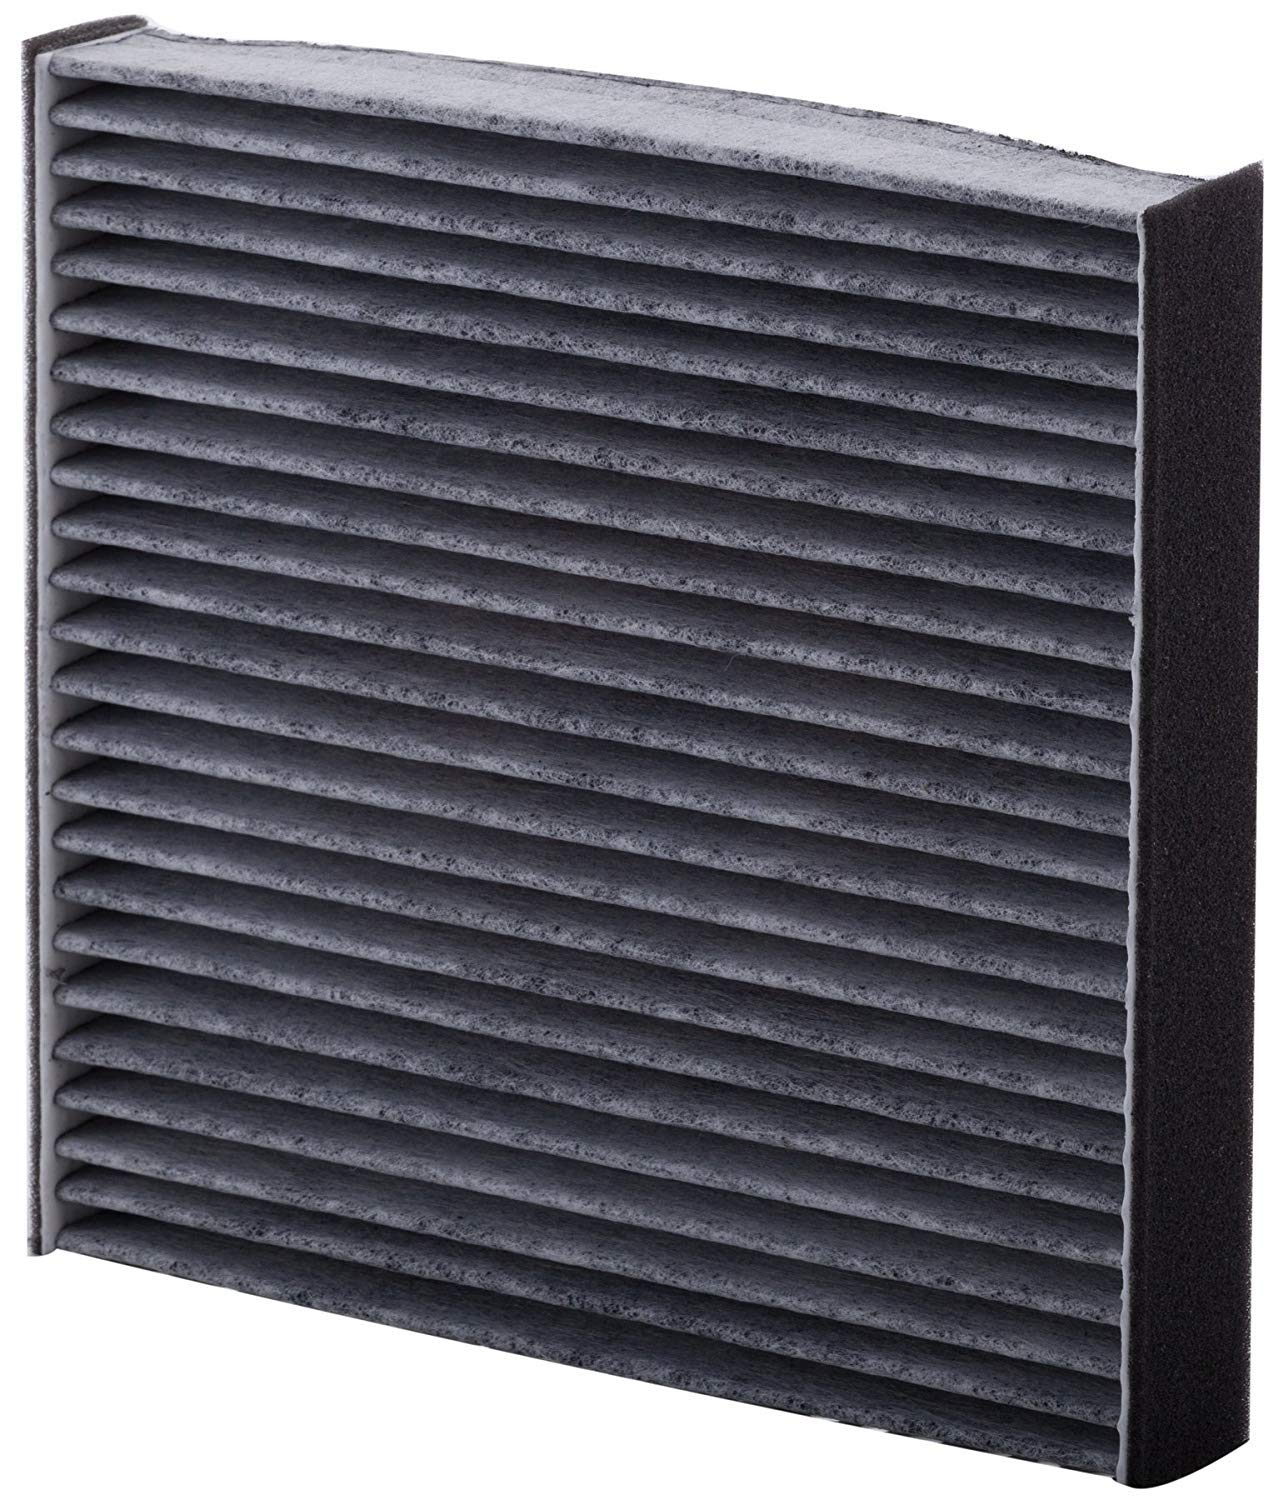 PG Cabin Air Filter PC5667C |Fits 2005-2019 various models of Toyota, Lexus, Jaguar, Subaru, Land Rover (Charcaol Media Pack of 6) by Premium Guard (Image #2)